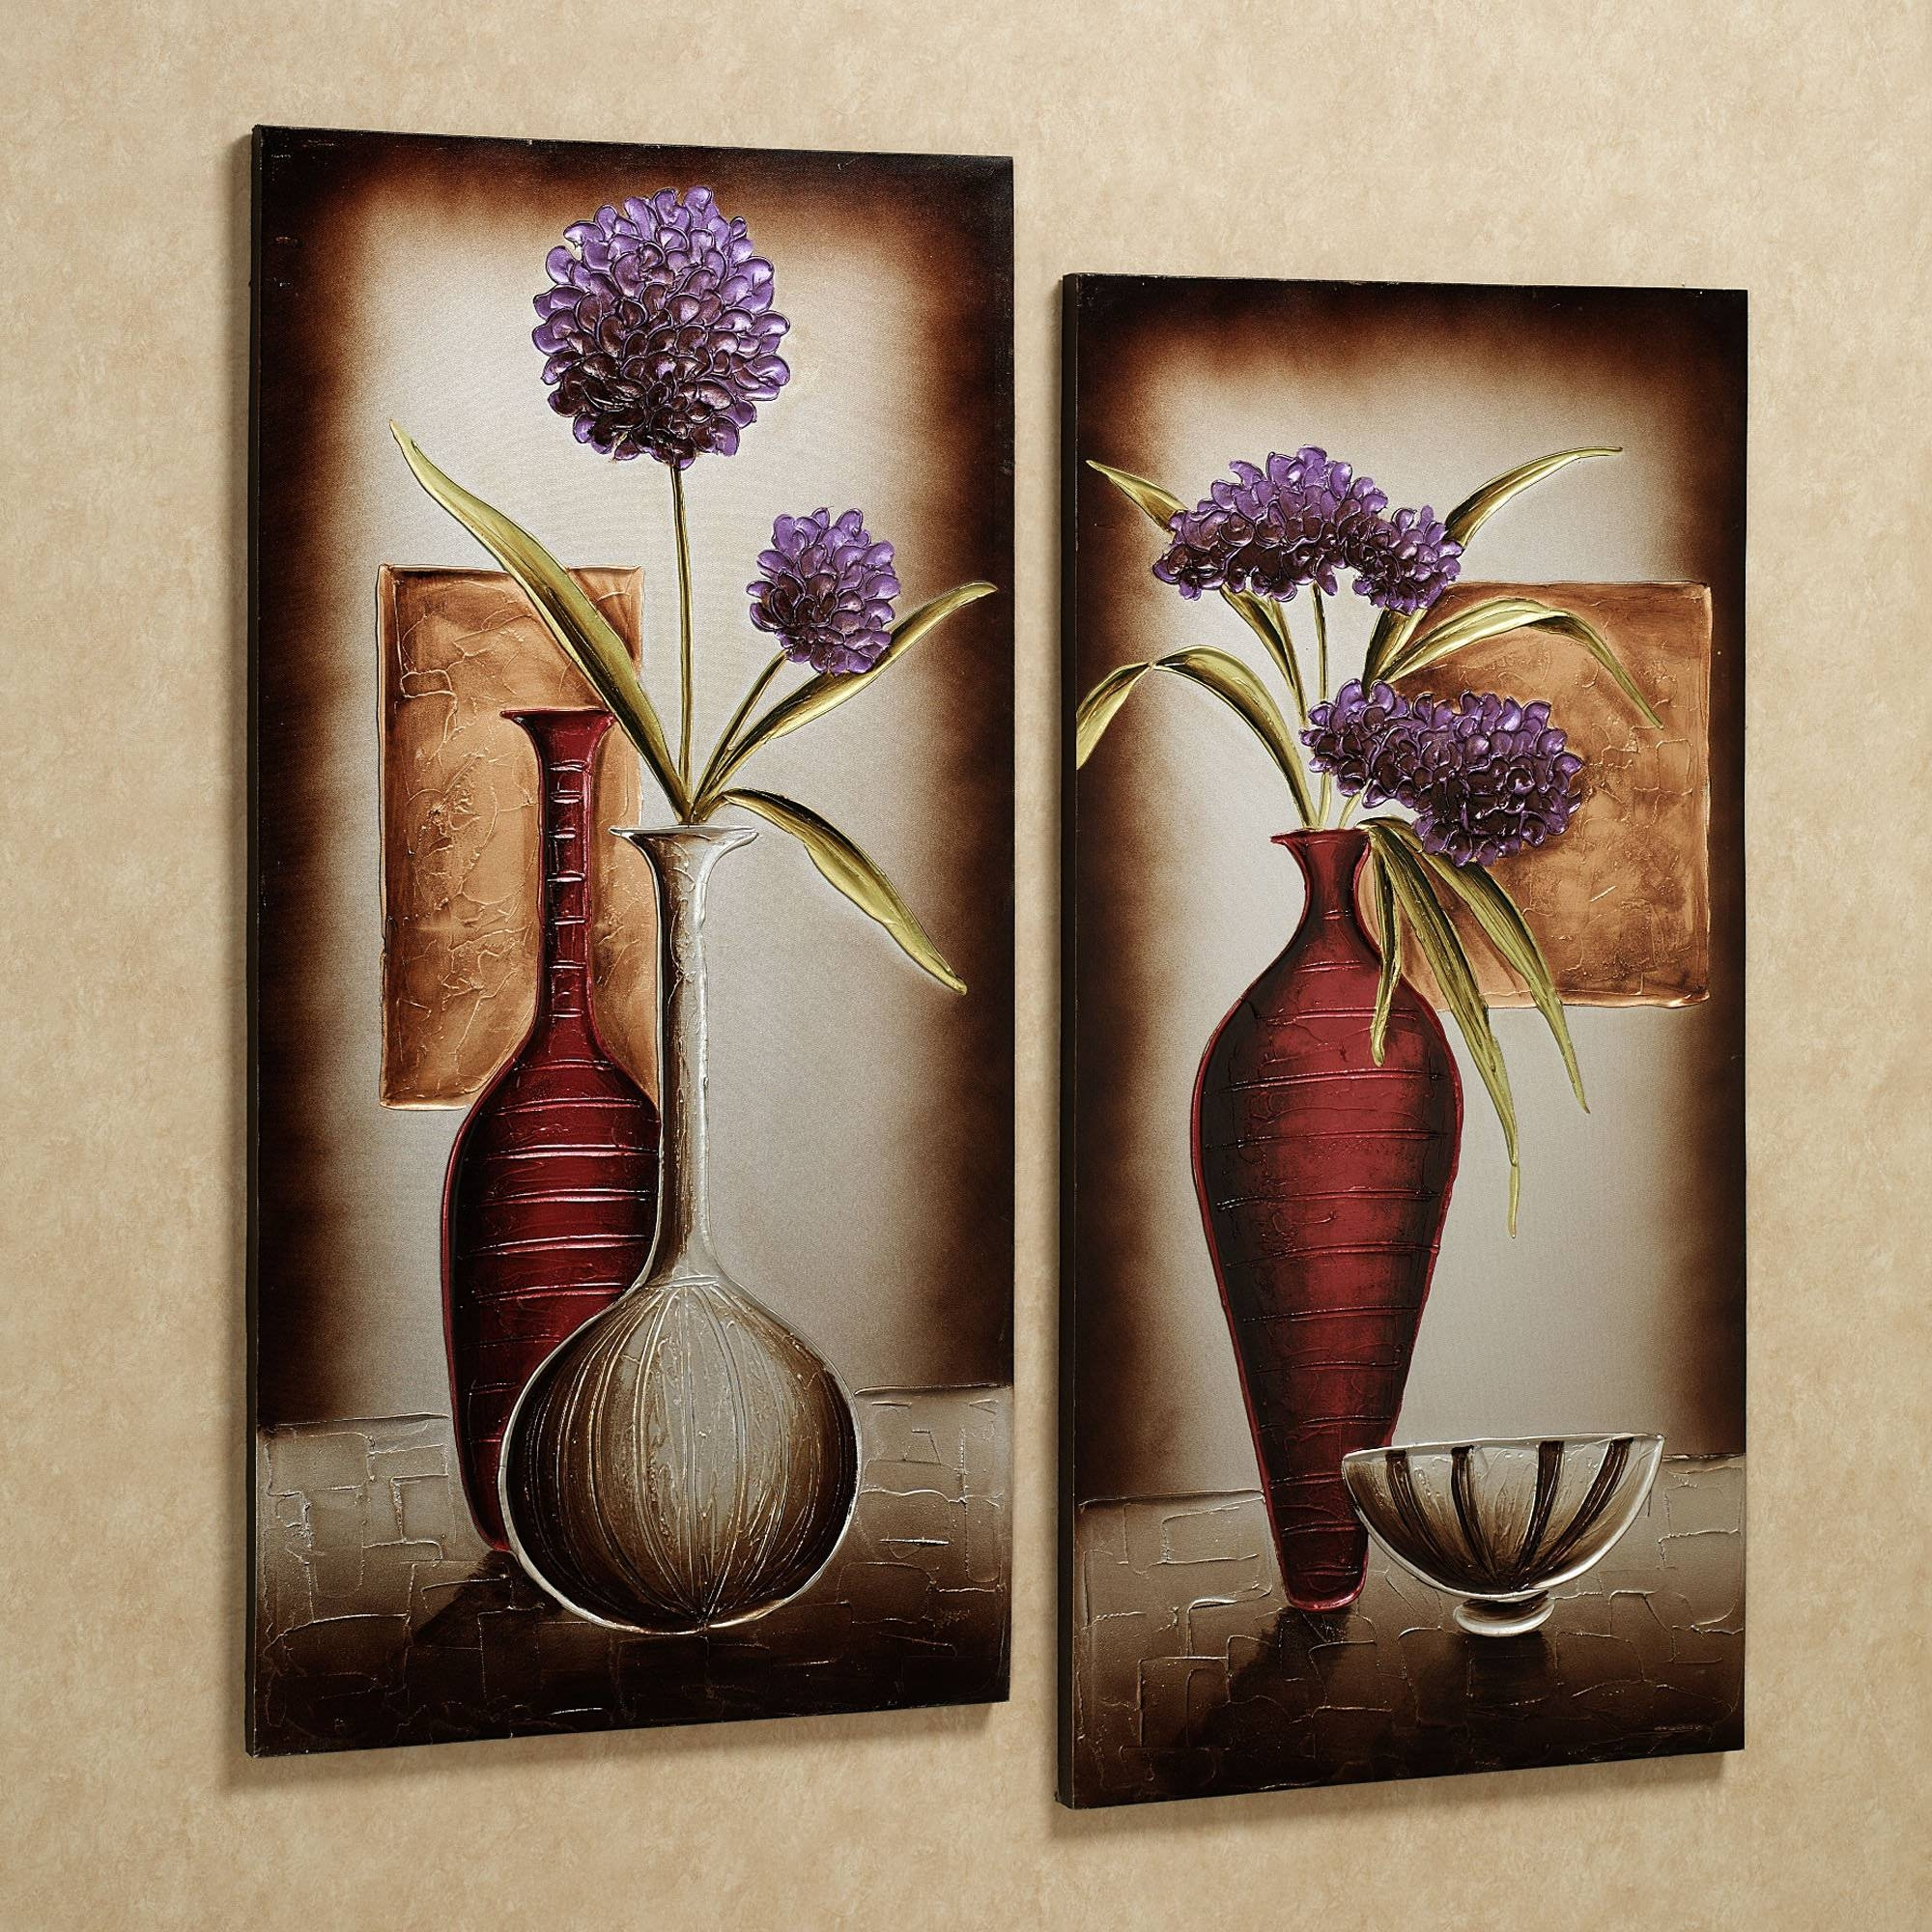 Decor: Amusing Canvas Wall Art Sets Of 3 On Copper Metal Art For Wall Pertaining To Most Recent Canvas Wall Art Sets Of (View 3 of 25)